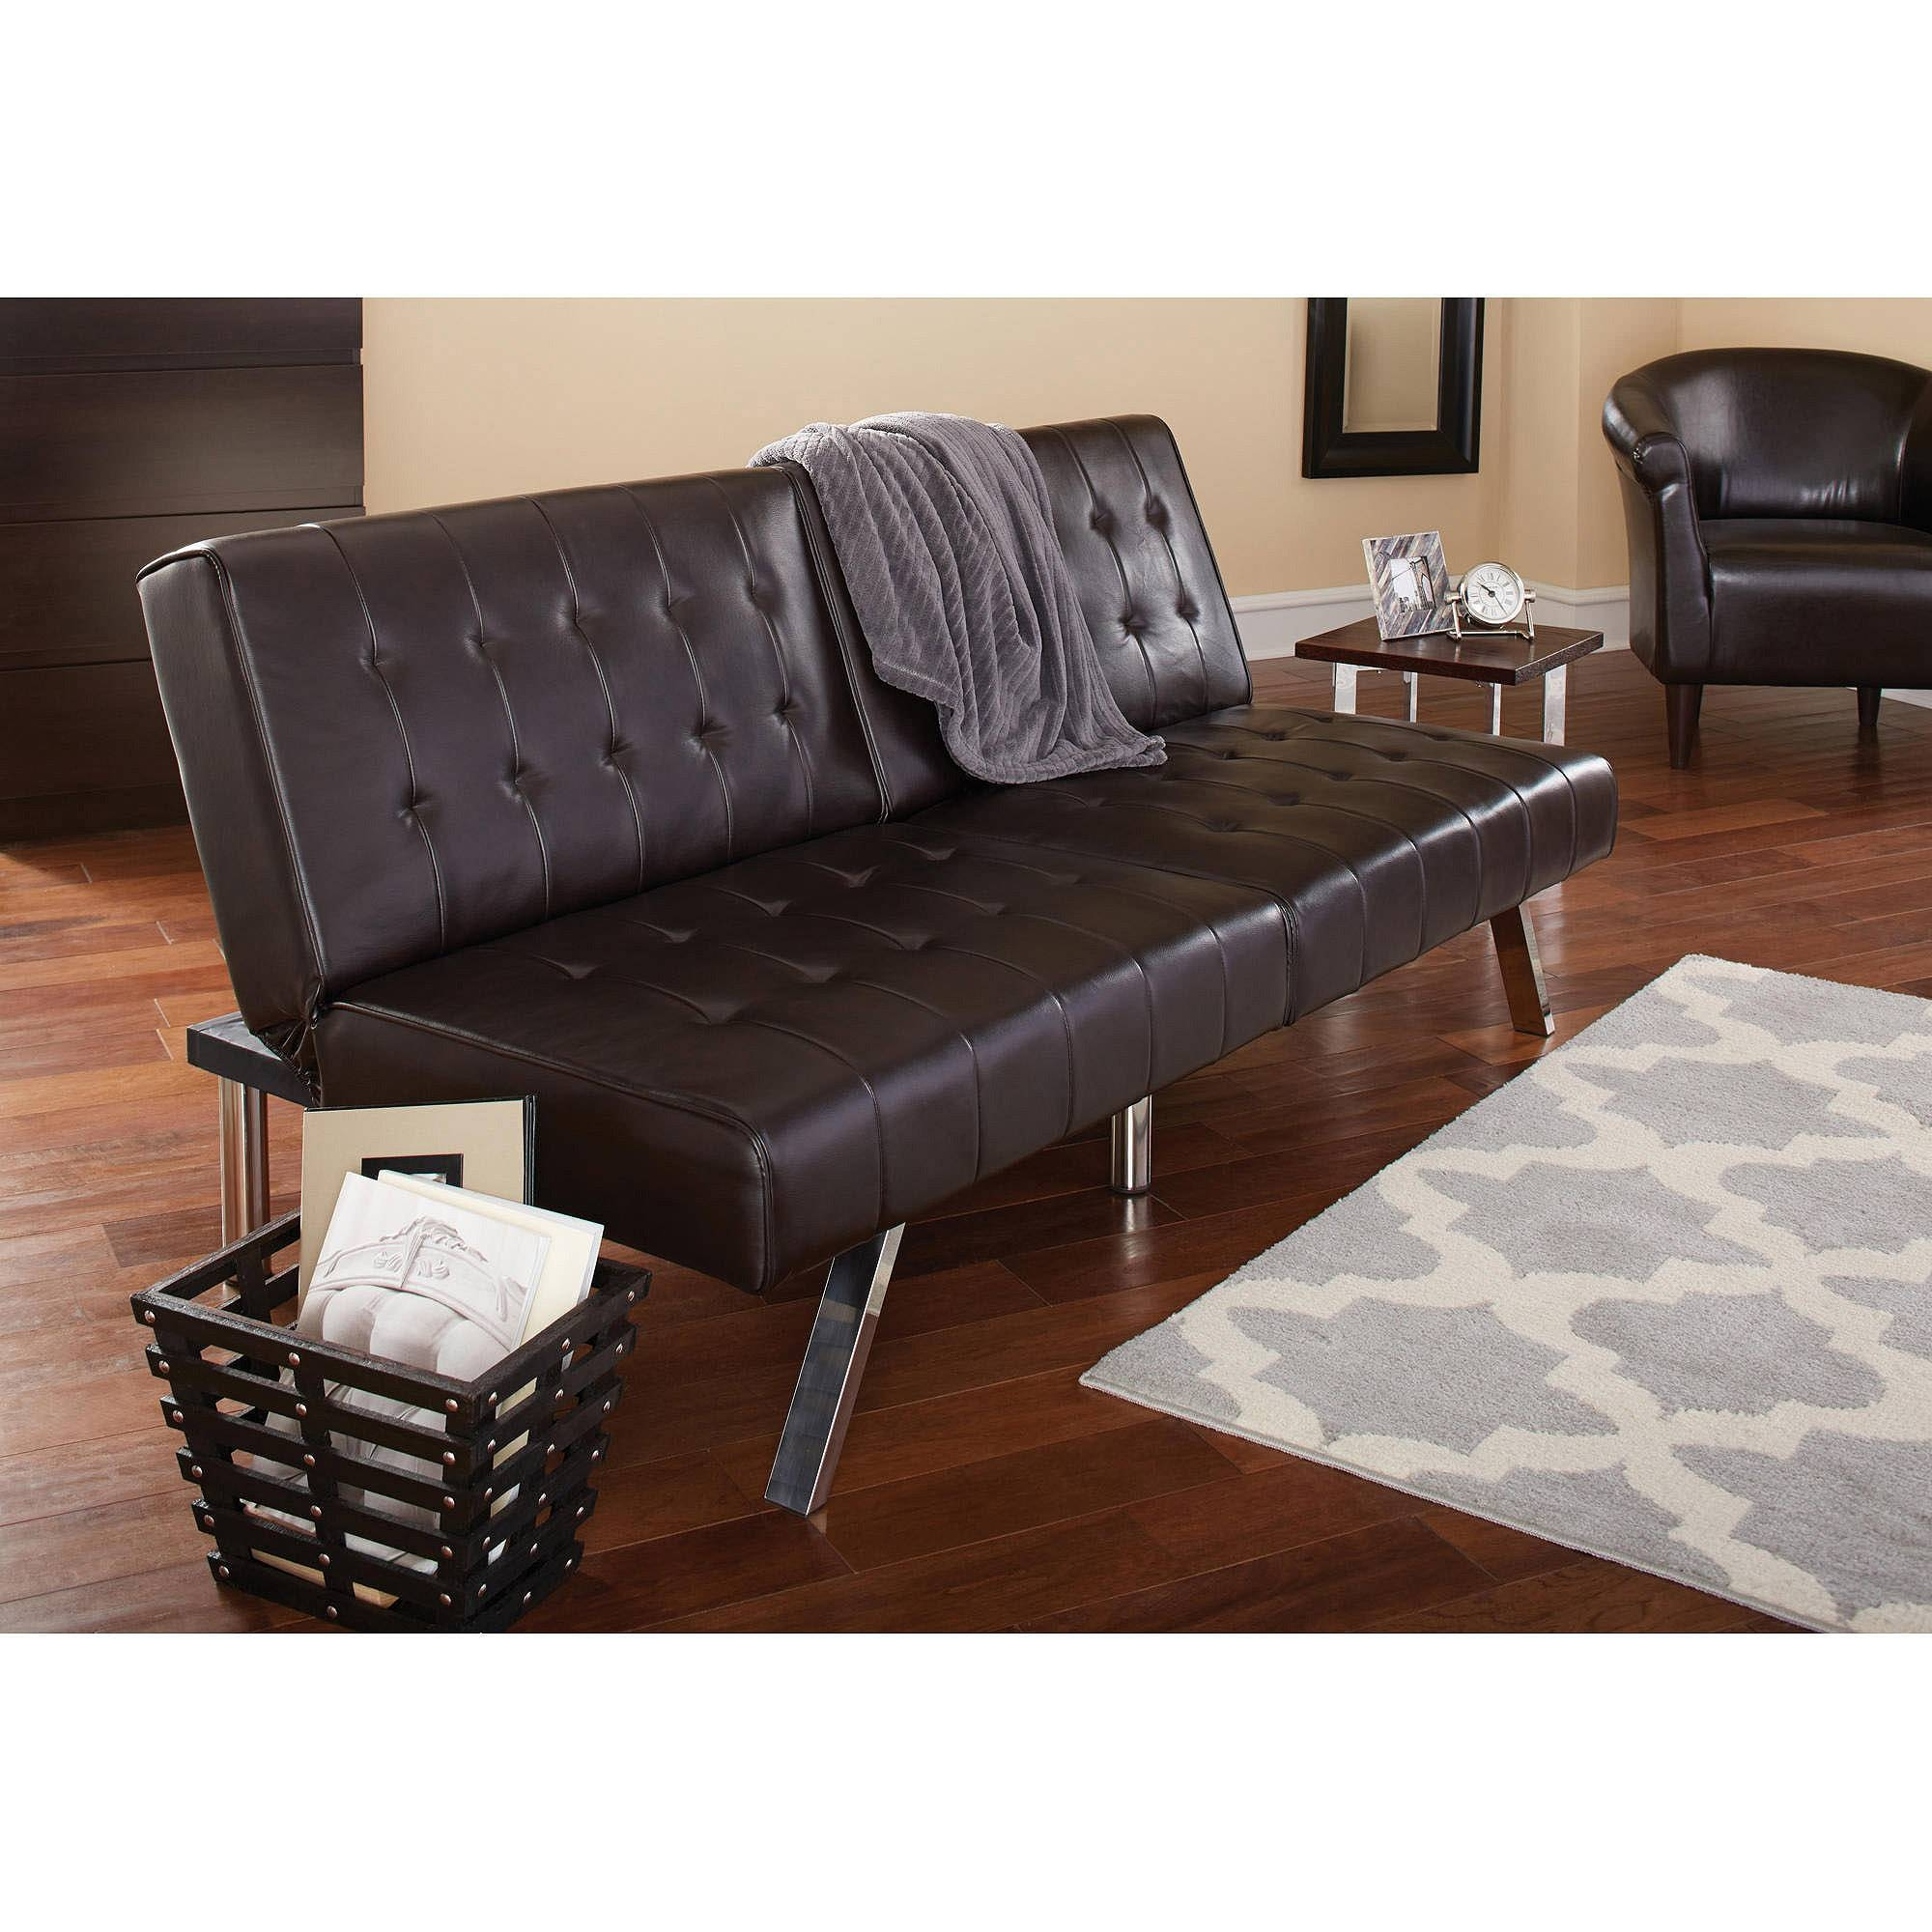 Mainstays Morgan Faux Leather Tufted Convertible Futon, Brown in Mainstays Sleeper Sofas (Image 3 of 15)